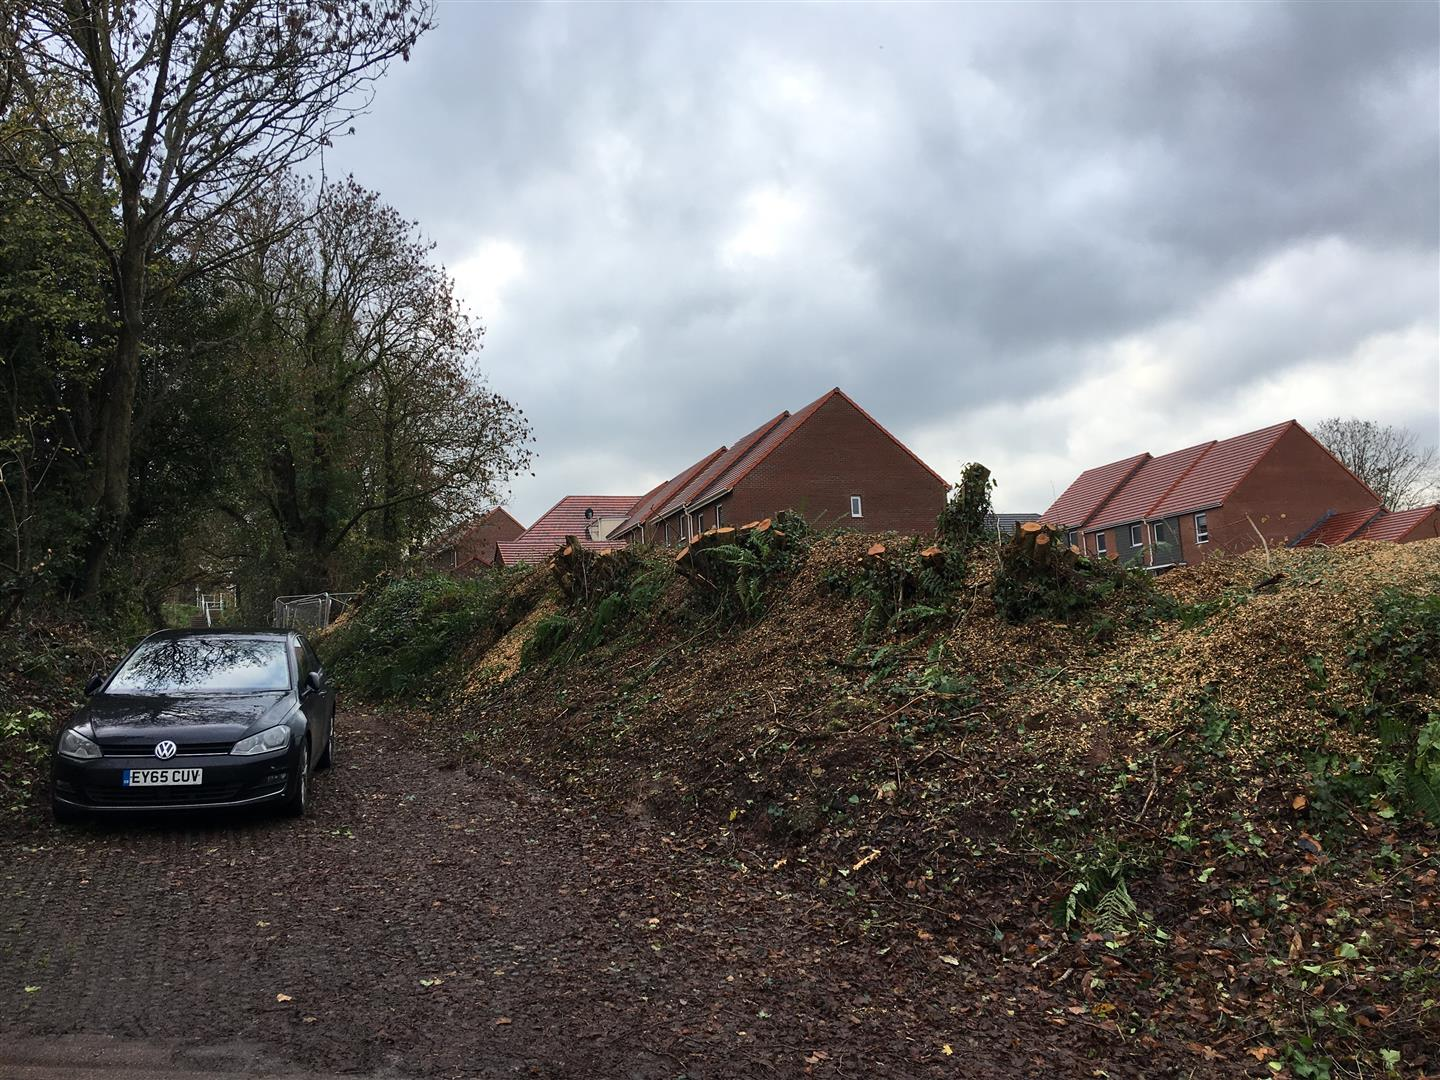 Images for 0.58 ACRE PLOT - RESI DEVELOPMENT OPPORTUNITY EAID:hollismoapi BID:11